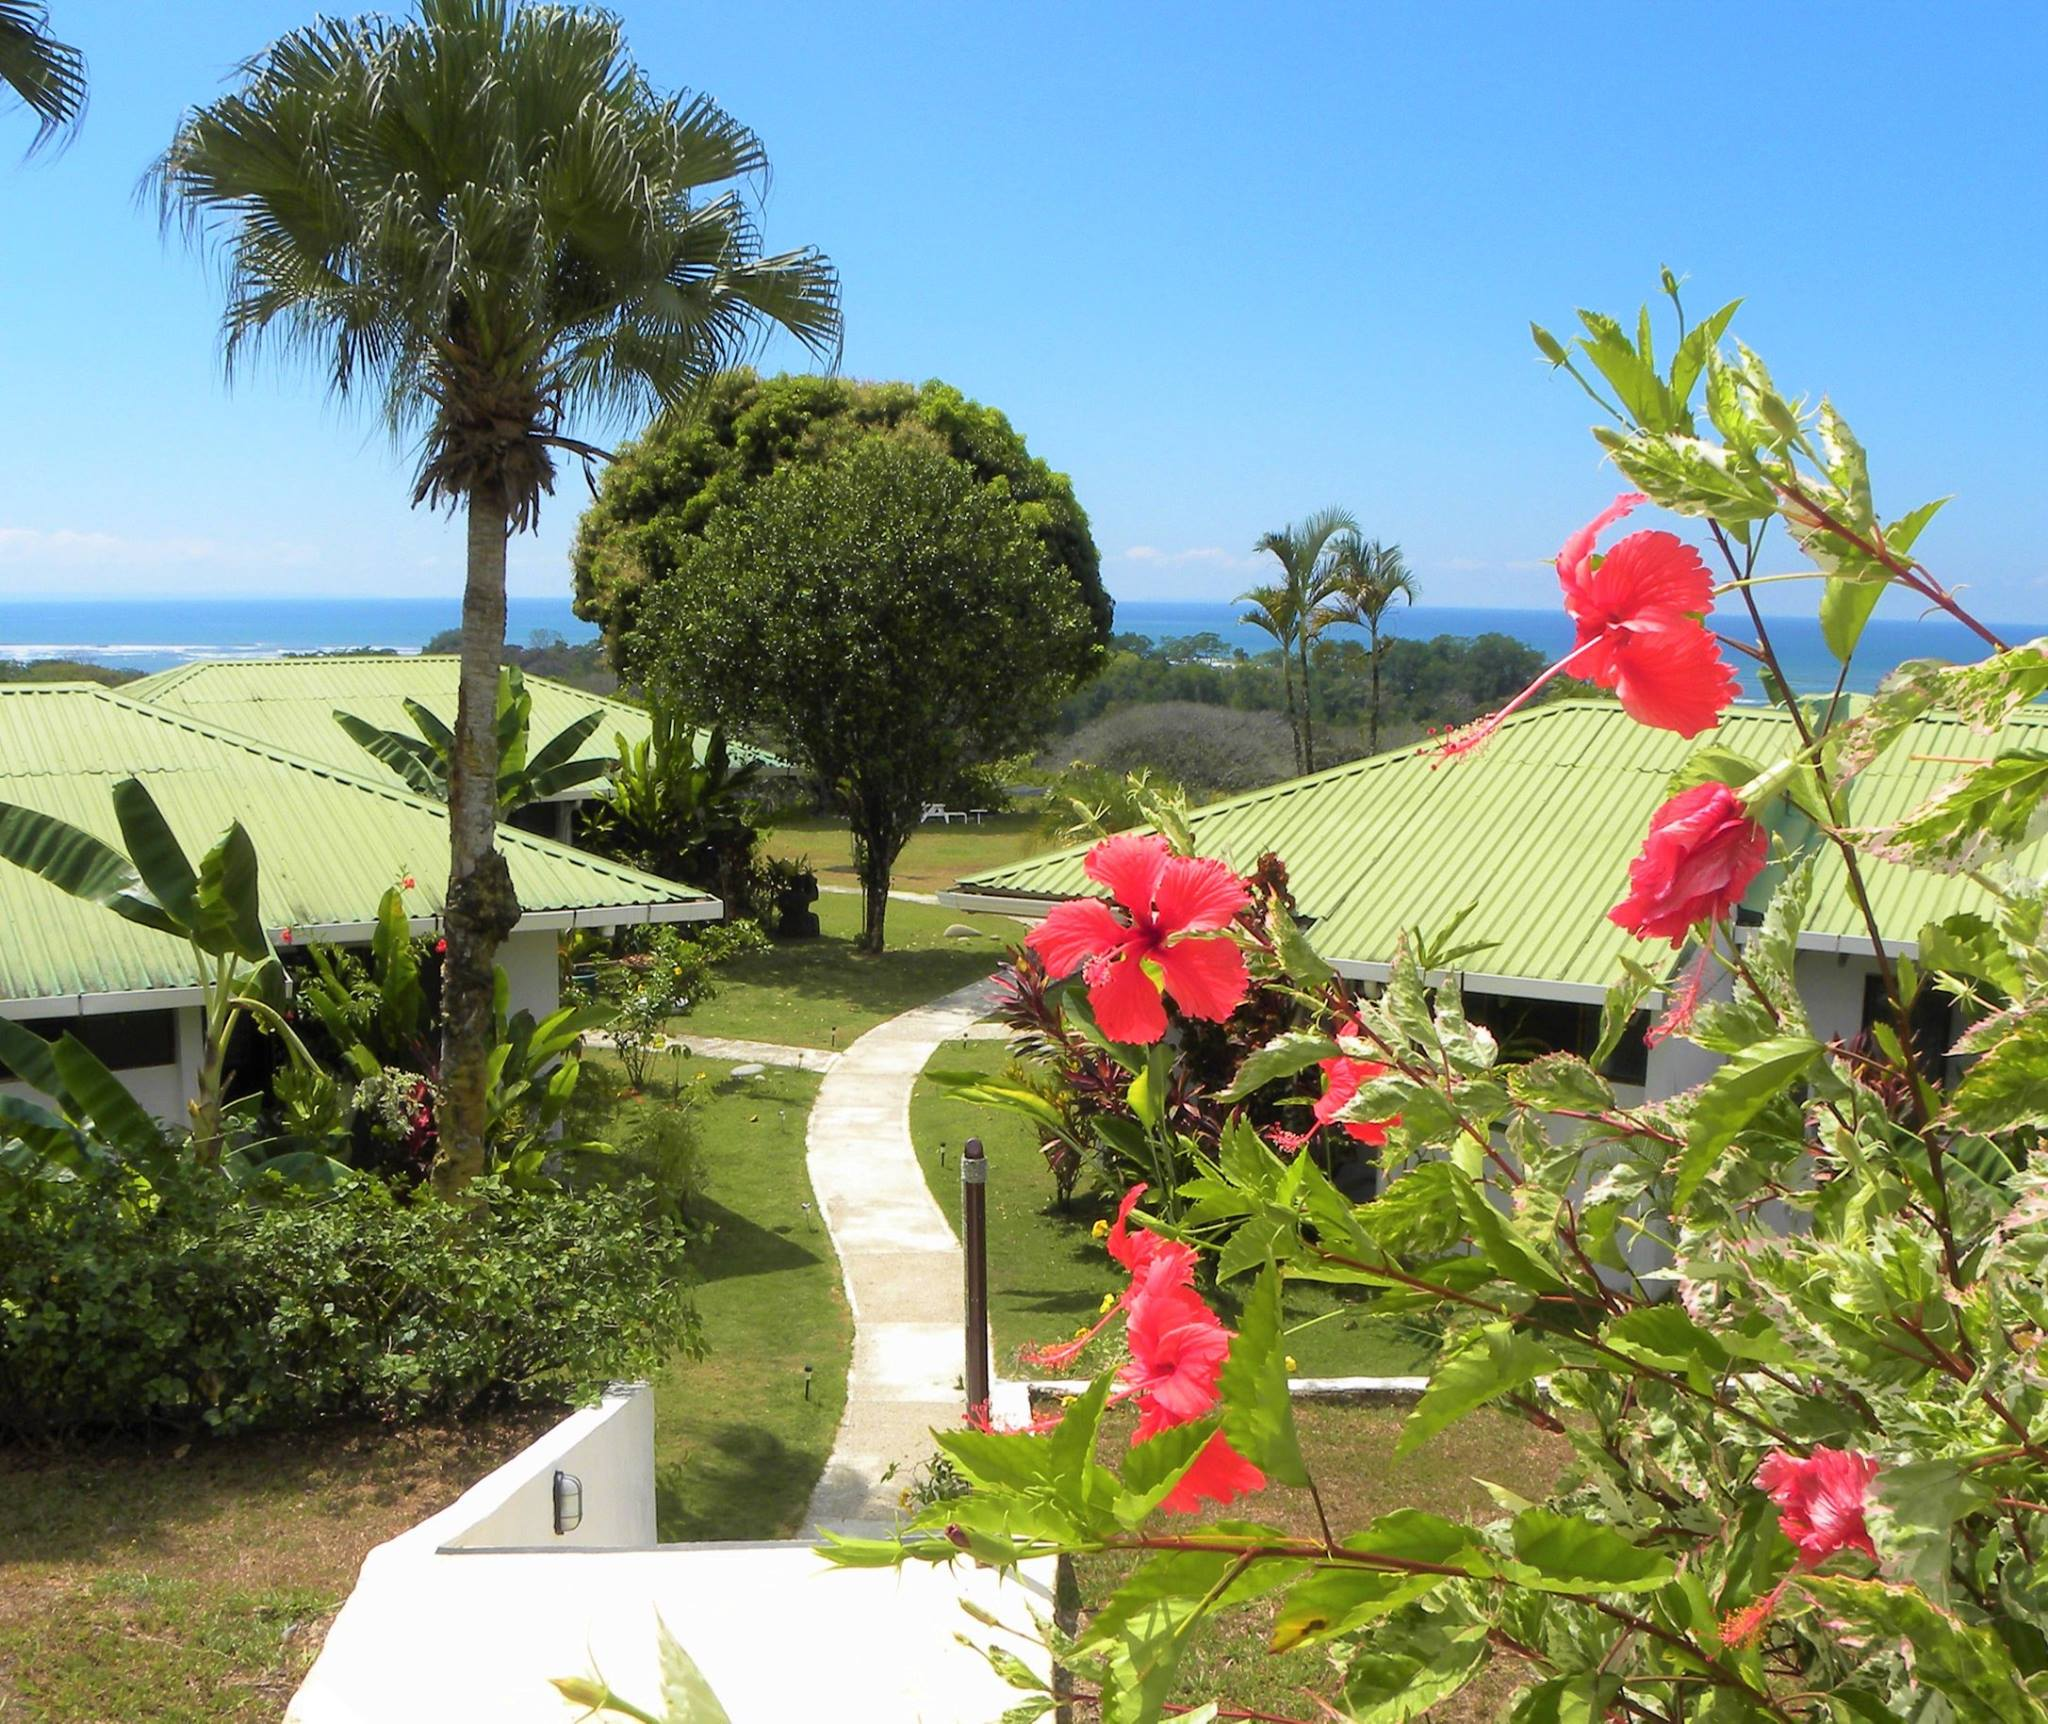 Grounds at the Lookout at Playa Tortuga